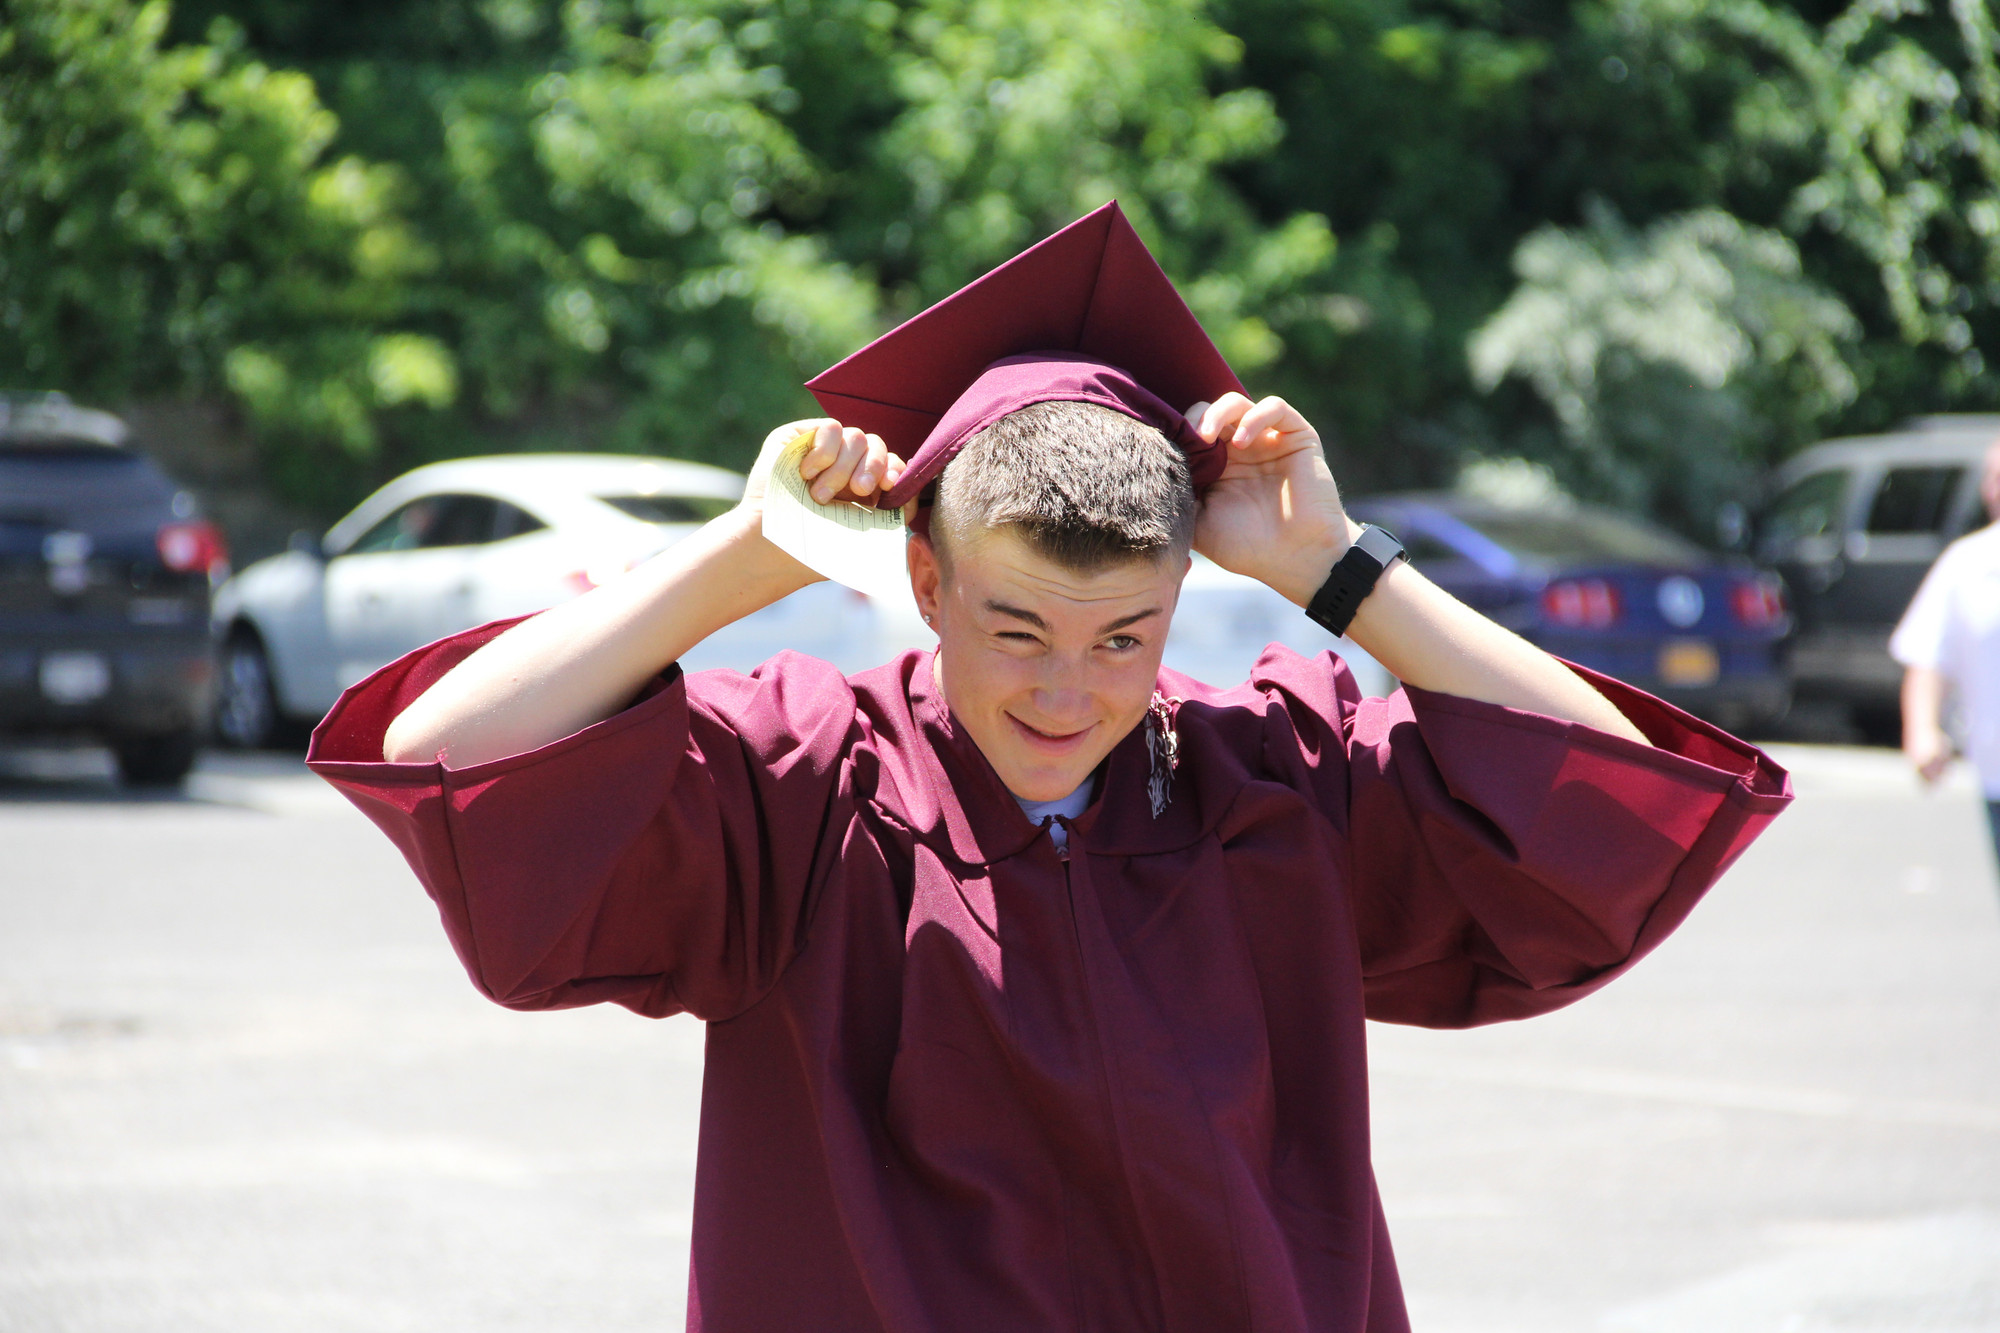 Tyler Clougher tried to fix his mortarboard before heading into the NYCB Theater for Mepham�s graduation.